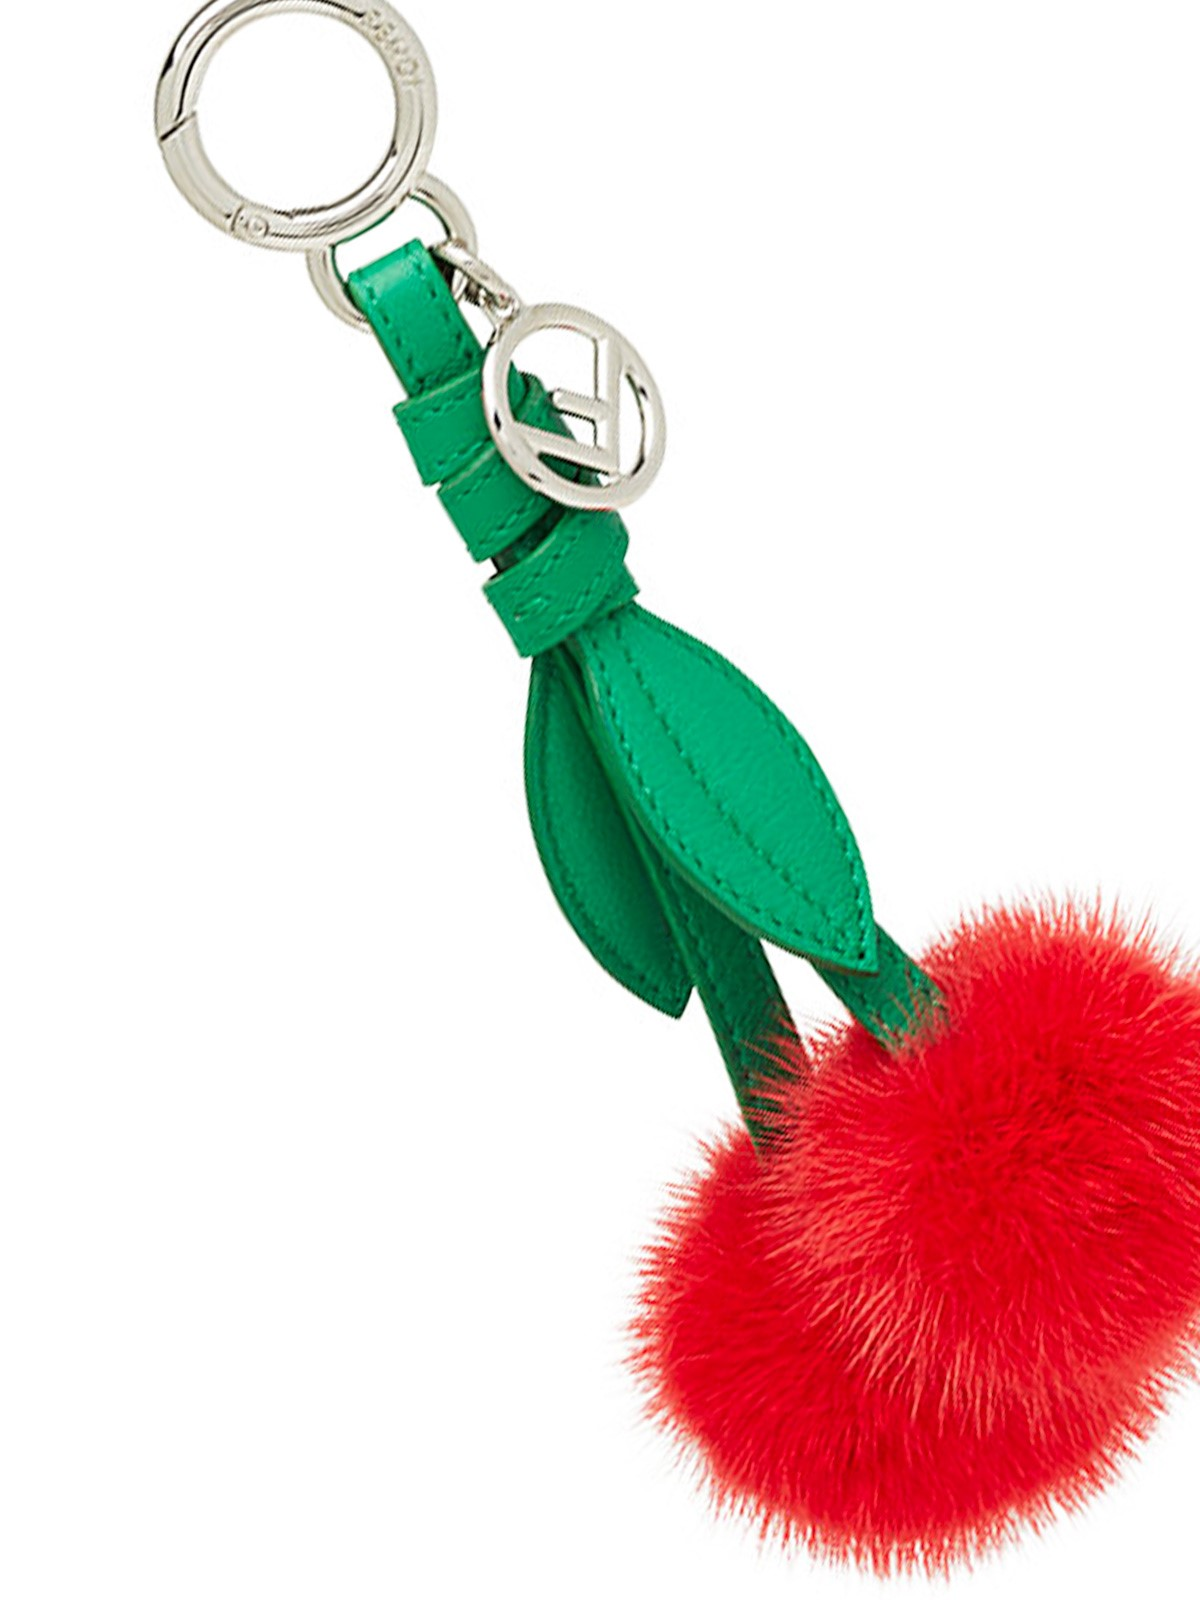 Limited Edition Cheap Online Clearance Store For Sale Fendi Cherry bag charm Discount Perfect Cheap Sale Wide Range Of Real Cheap Price J6dDO0o